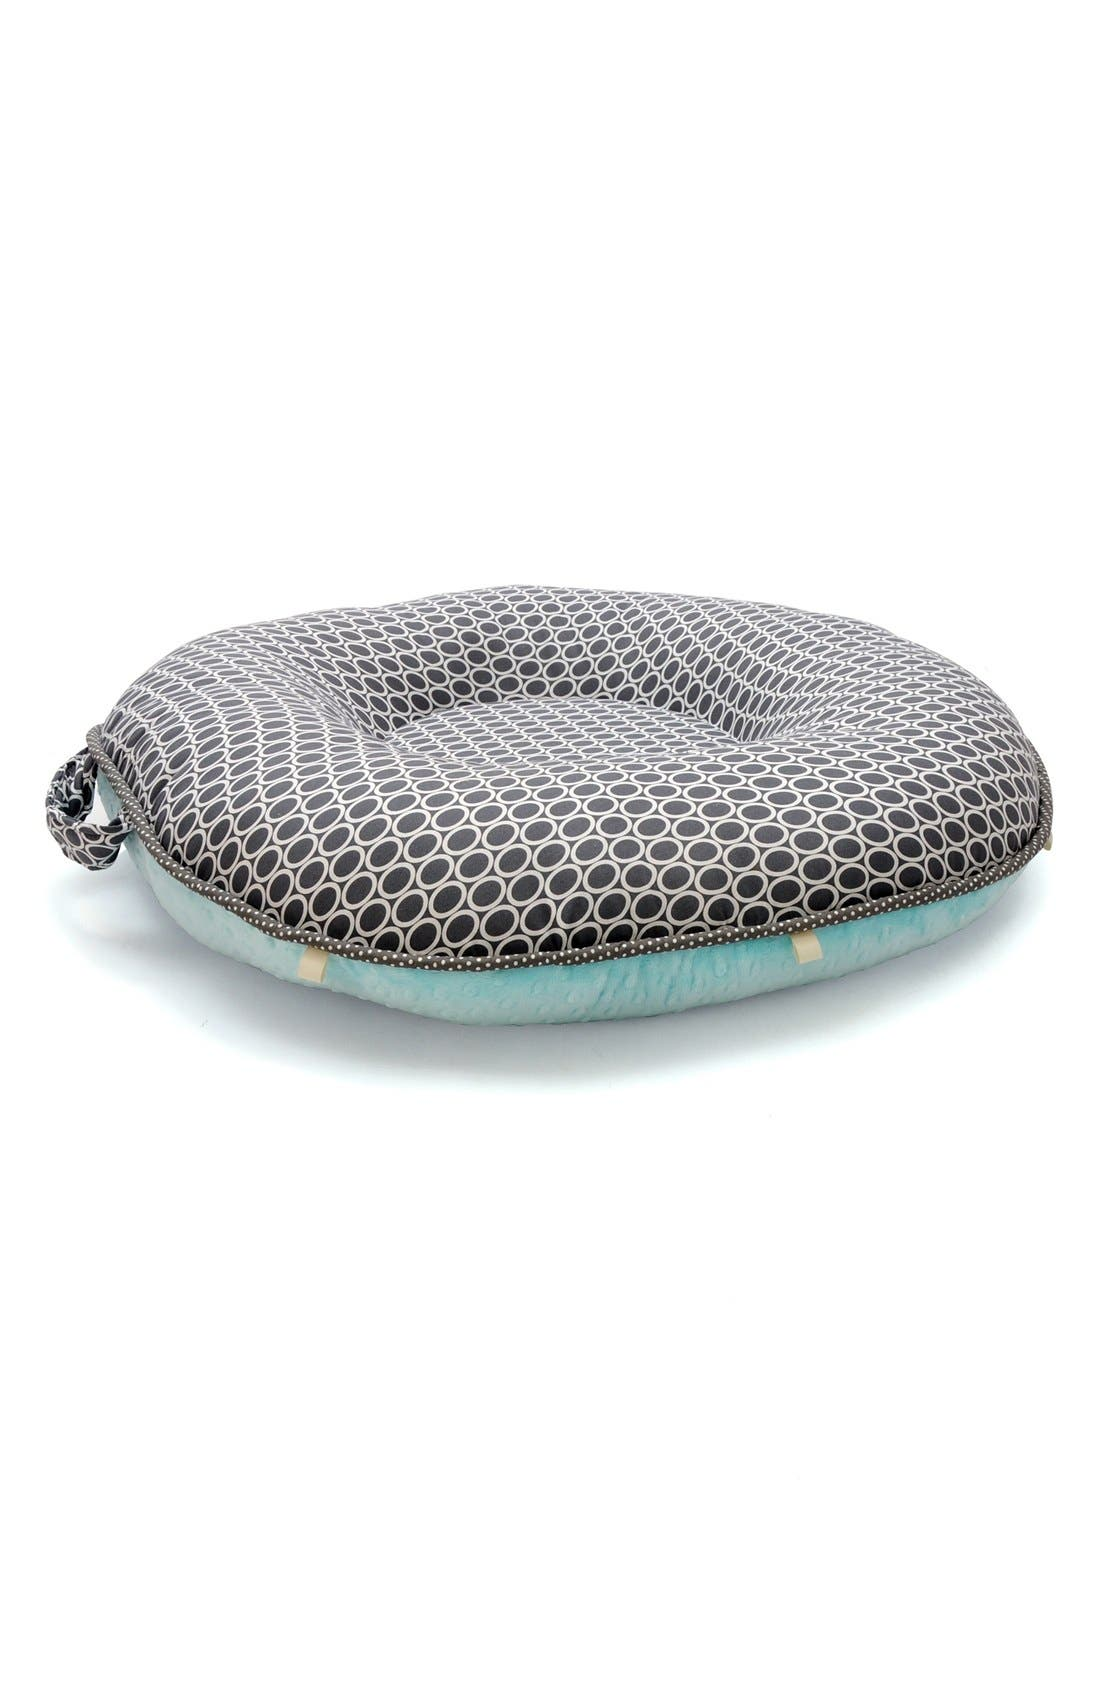 'Majestic' Portable Floor Pillow,                             Main thumbnail 1, color,                             Grey/ Aqua